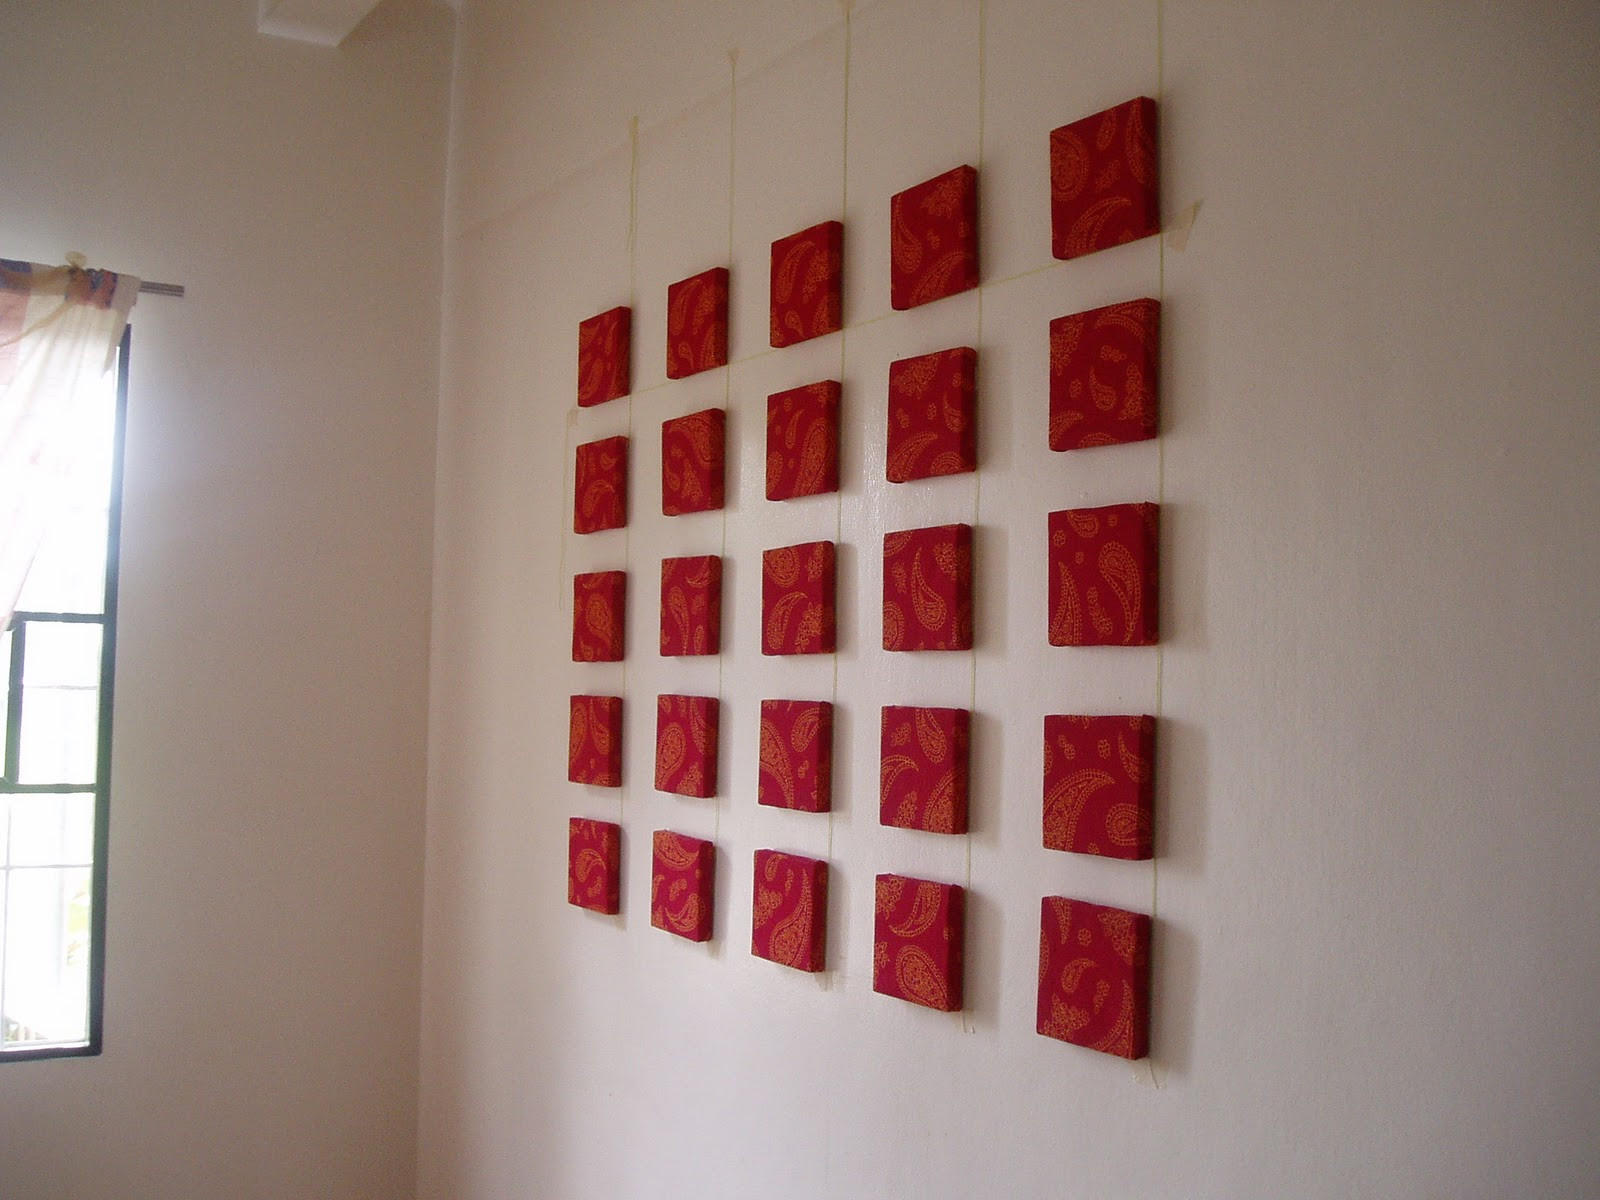 Best ideas about Red Wall Art . Save or Pin Sanguine Fiasco Red Wall Decor Now.